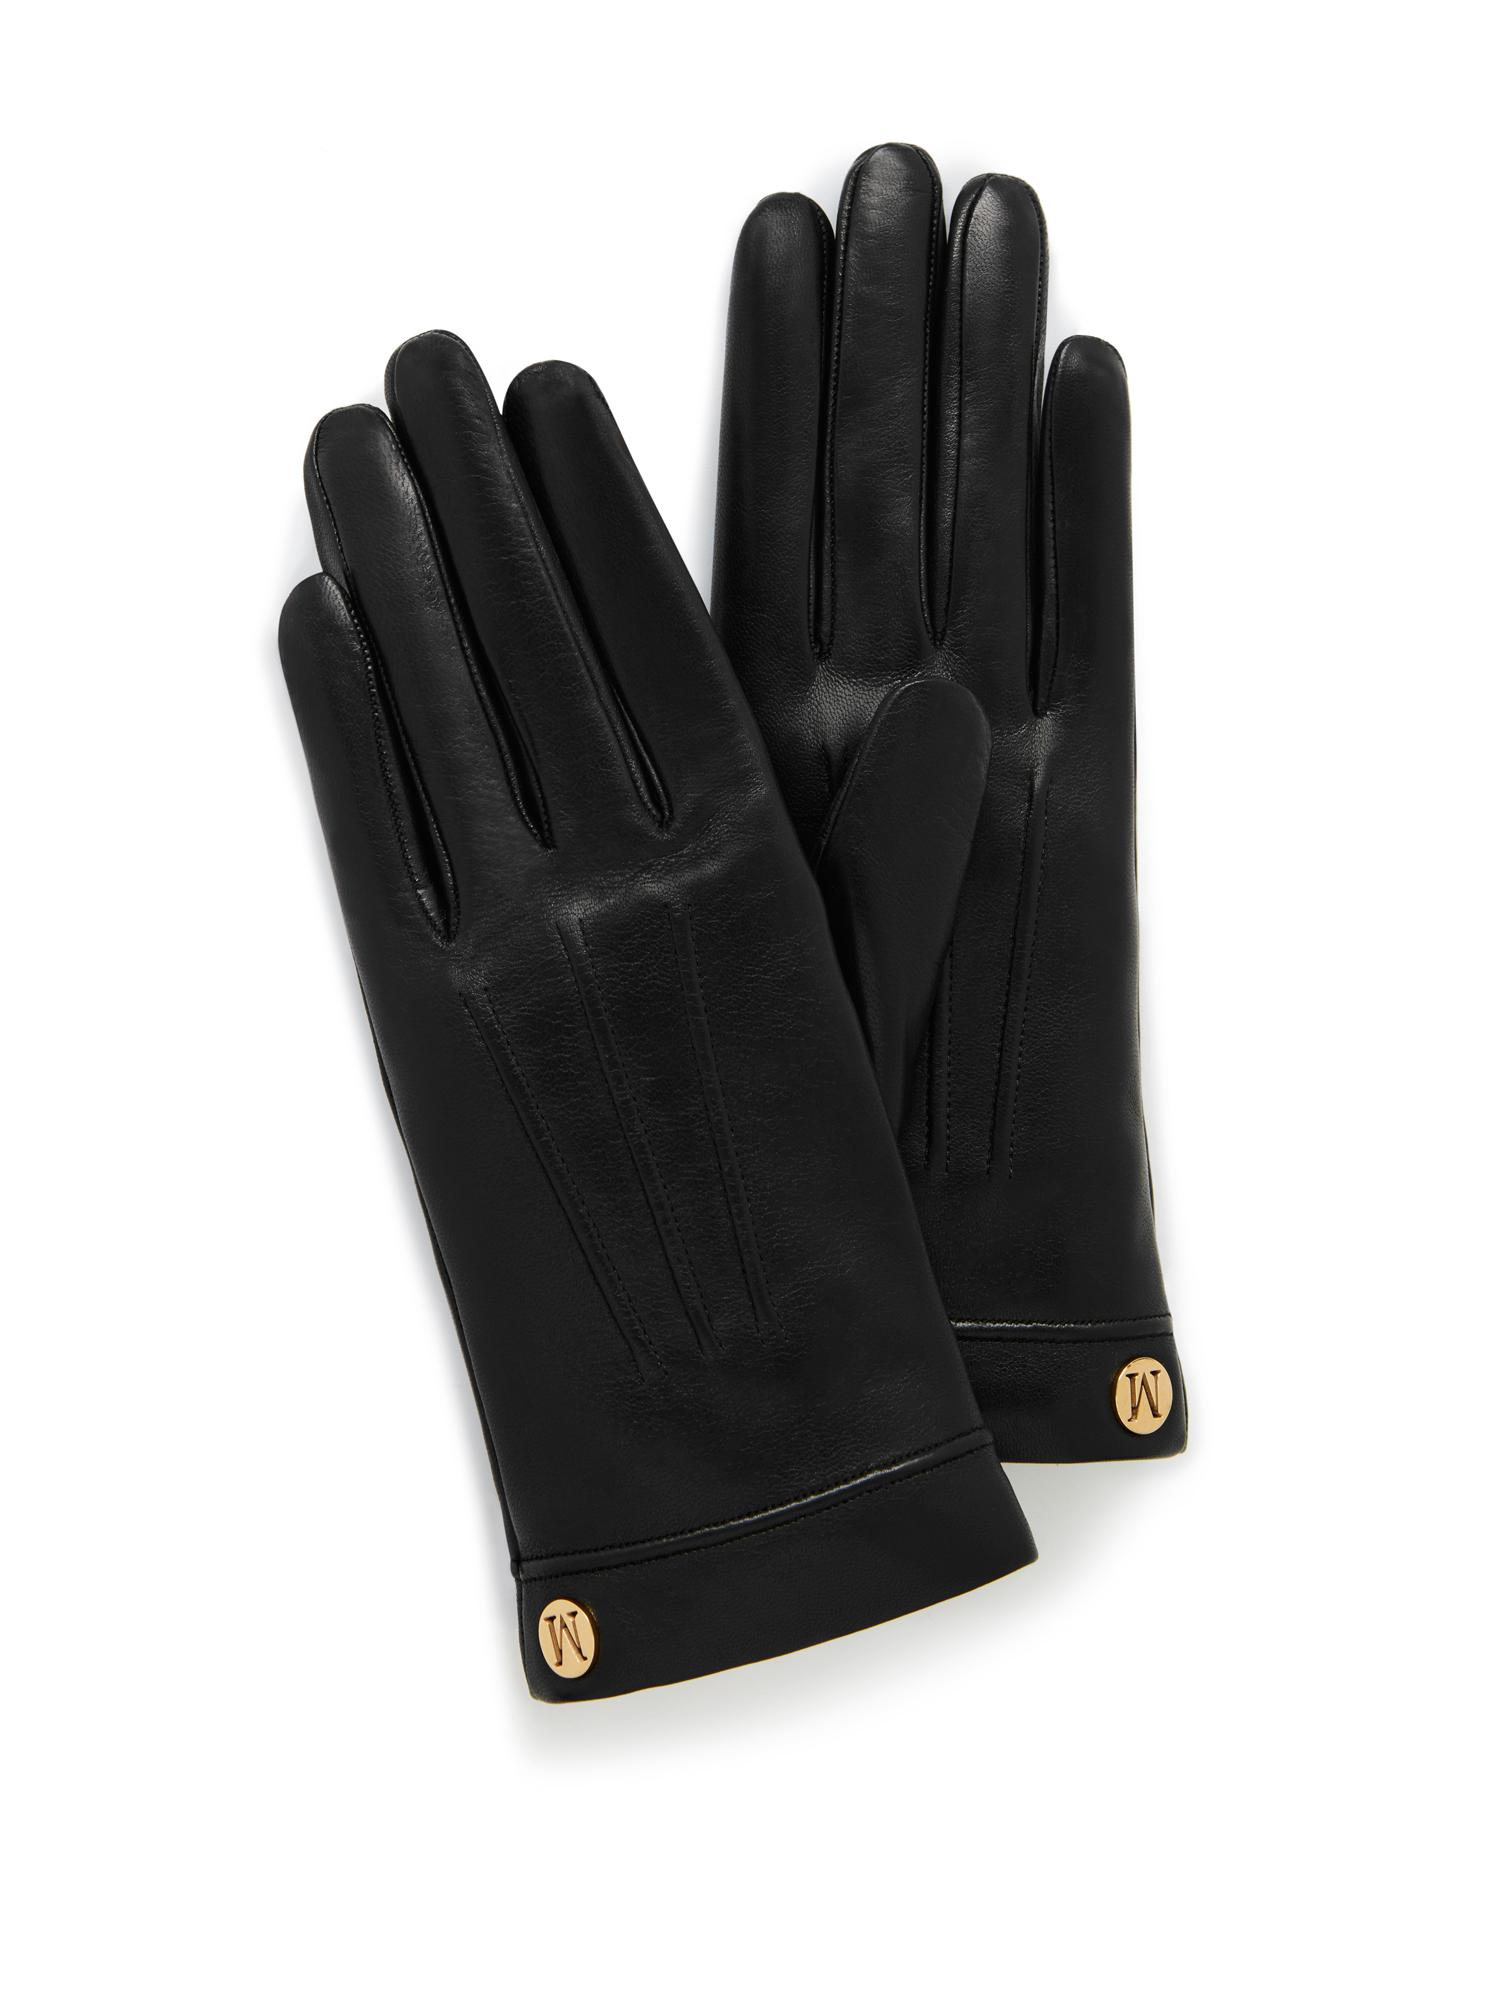 Womens leather gloves australia - Mulberry Soft Nappa Leather Gloves